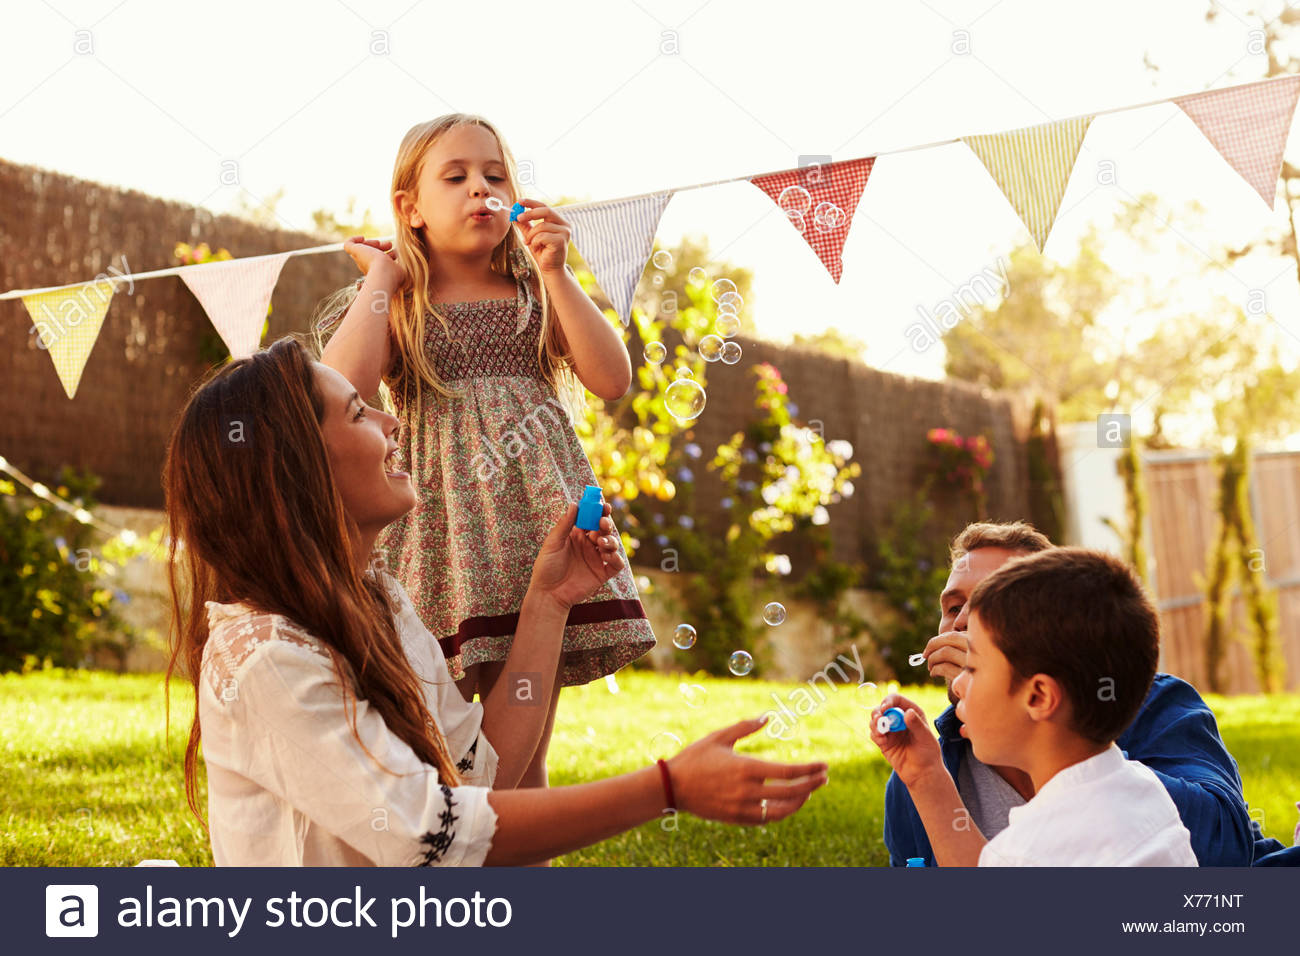 Parents Blowing Bubbles With Children In Garden - Stock Image